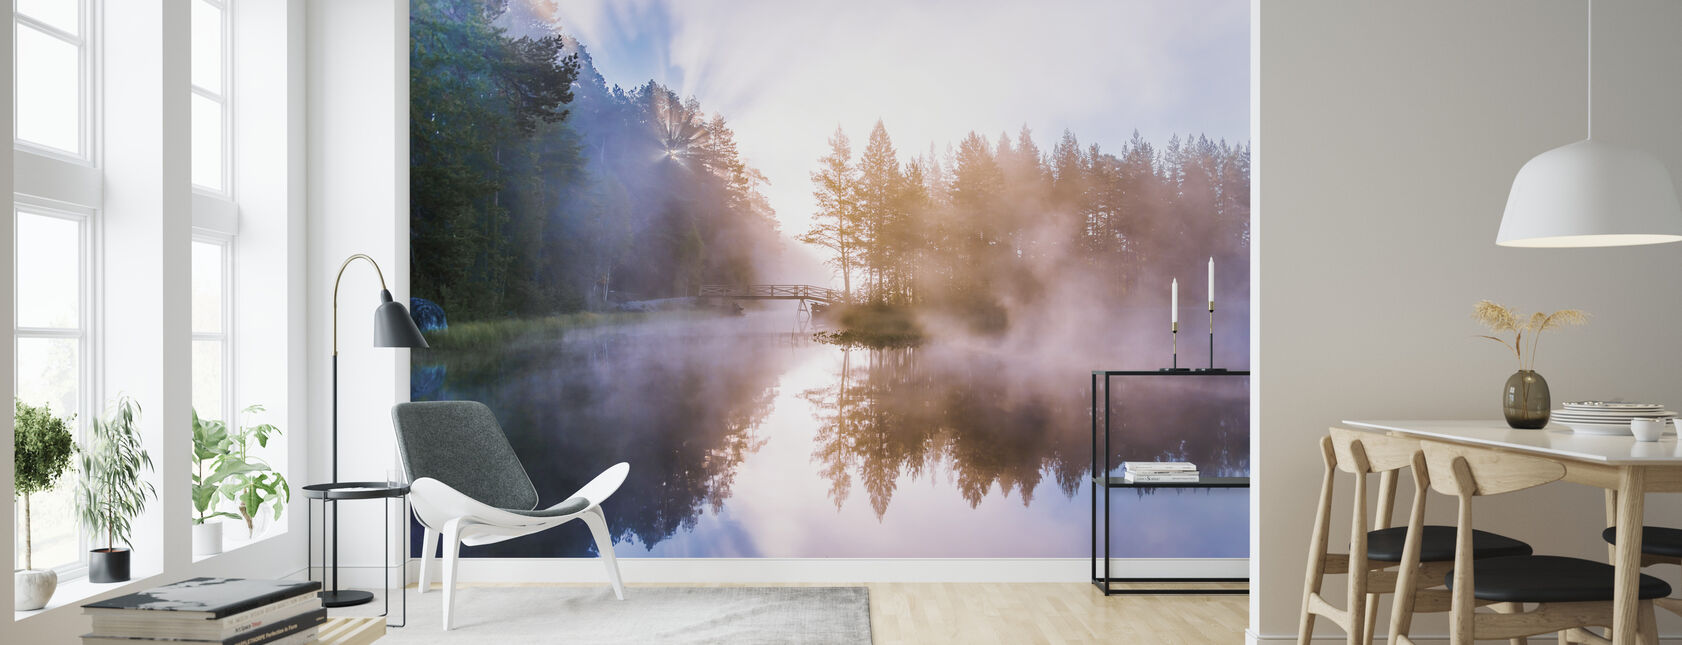 Ethereal - Wallpaper - Living Room